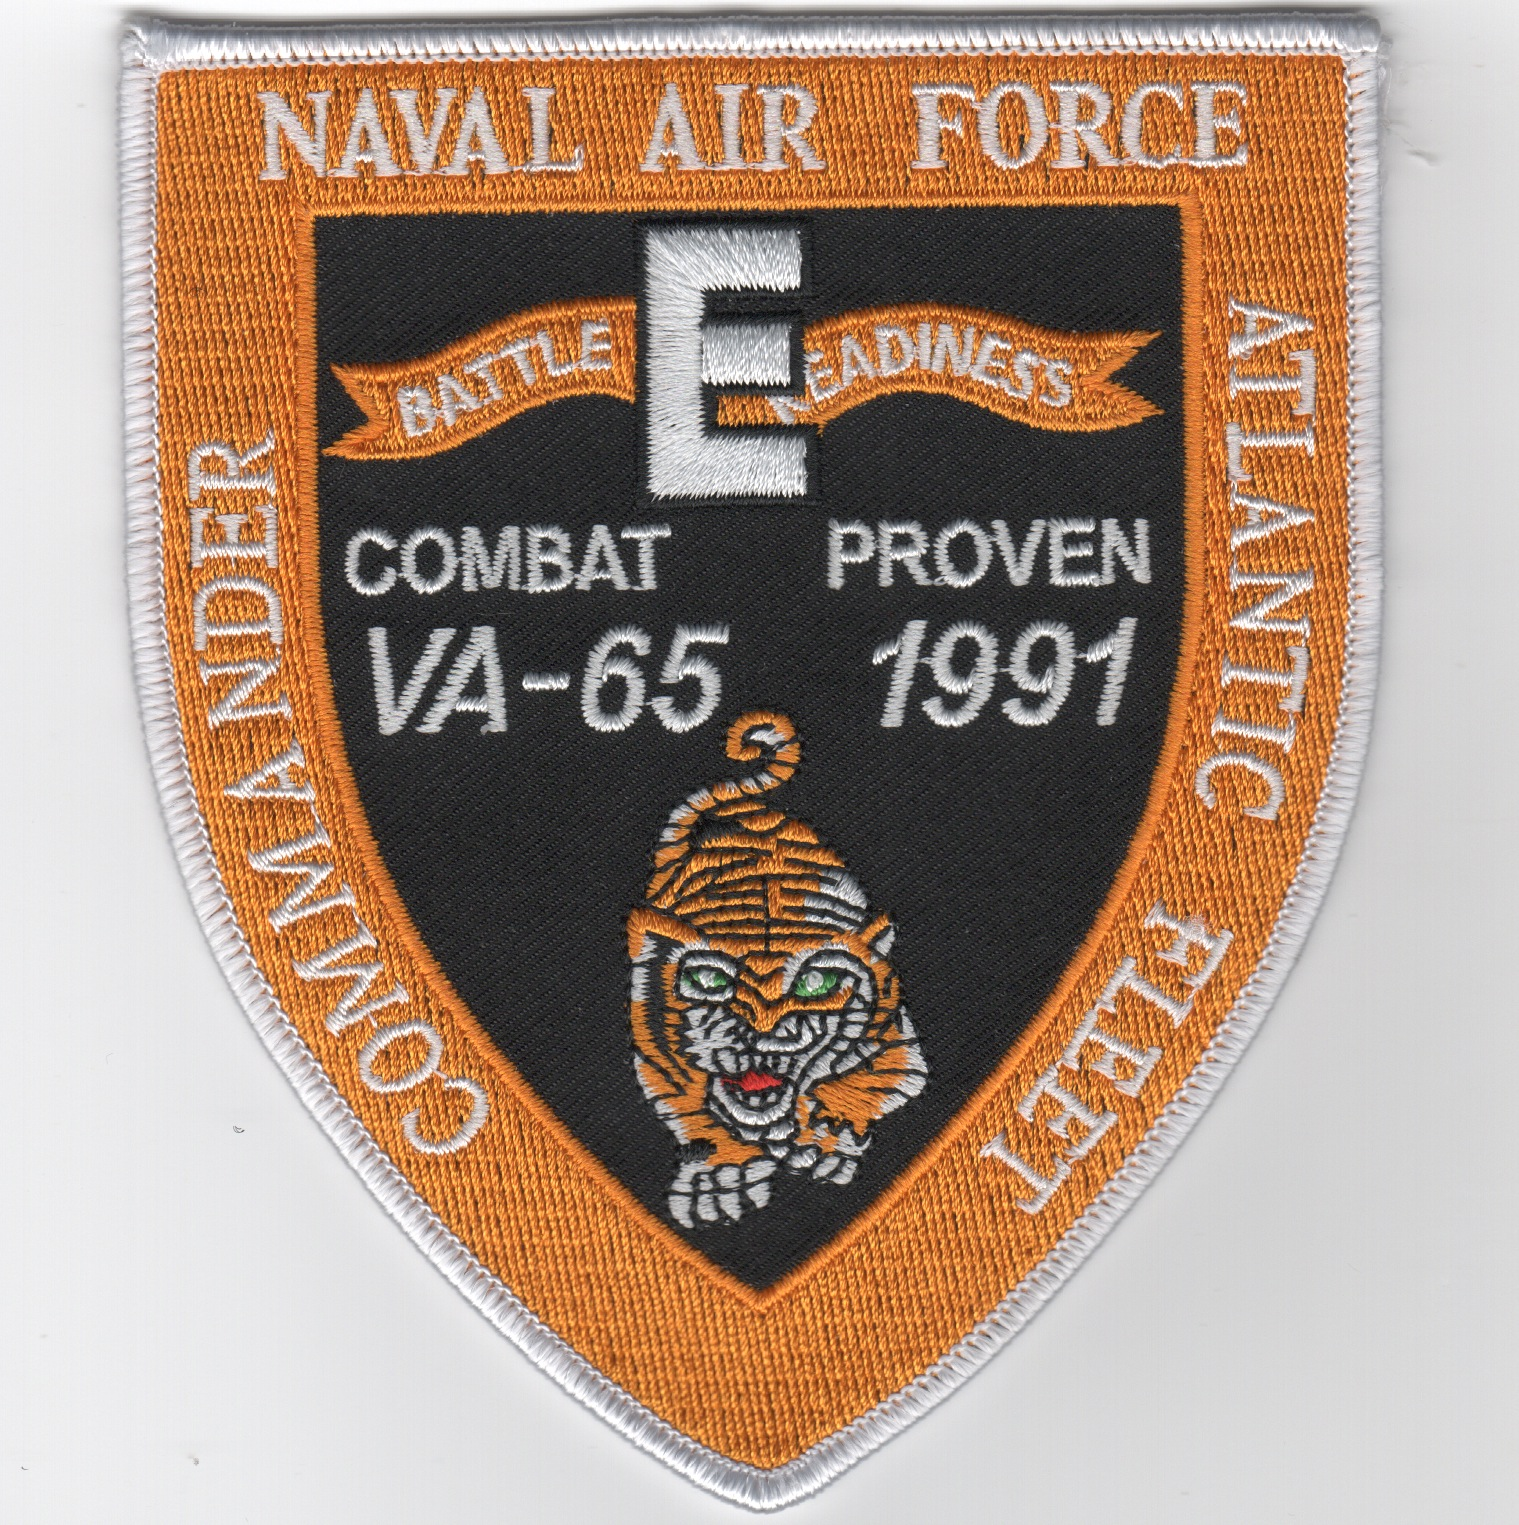 VA-65 1991 Battle 'E' Shield (Repro)